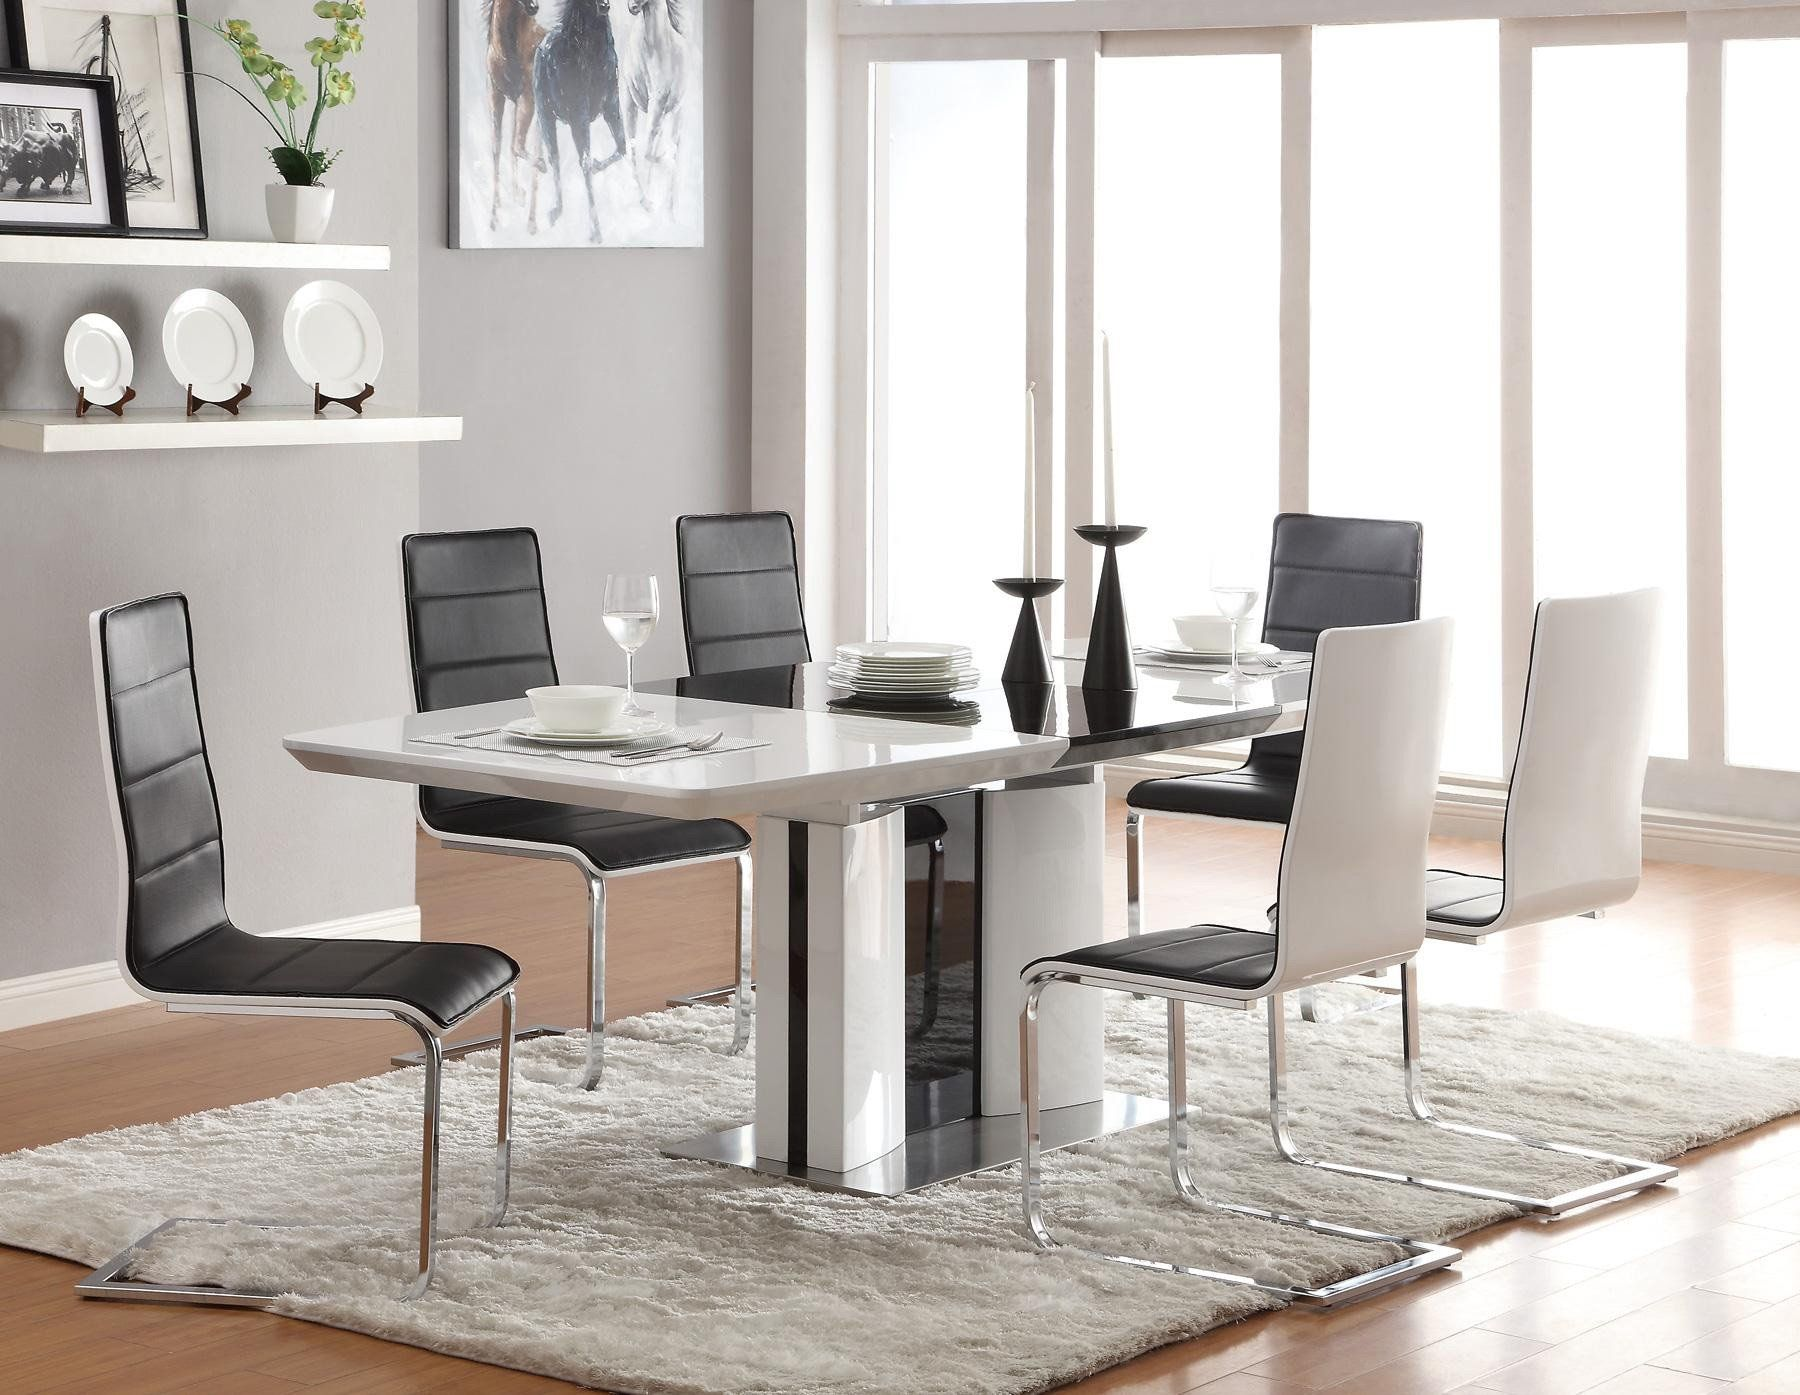 Modern Italian Dining Room Furniture Sets With Black And White Extraordinary White Dining Room Table Set Design Inspiration